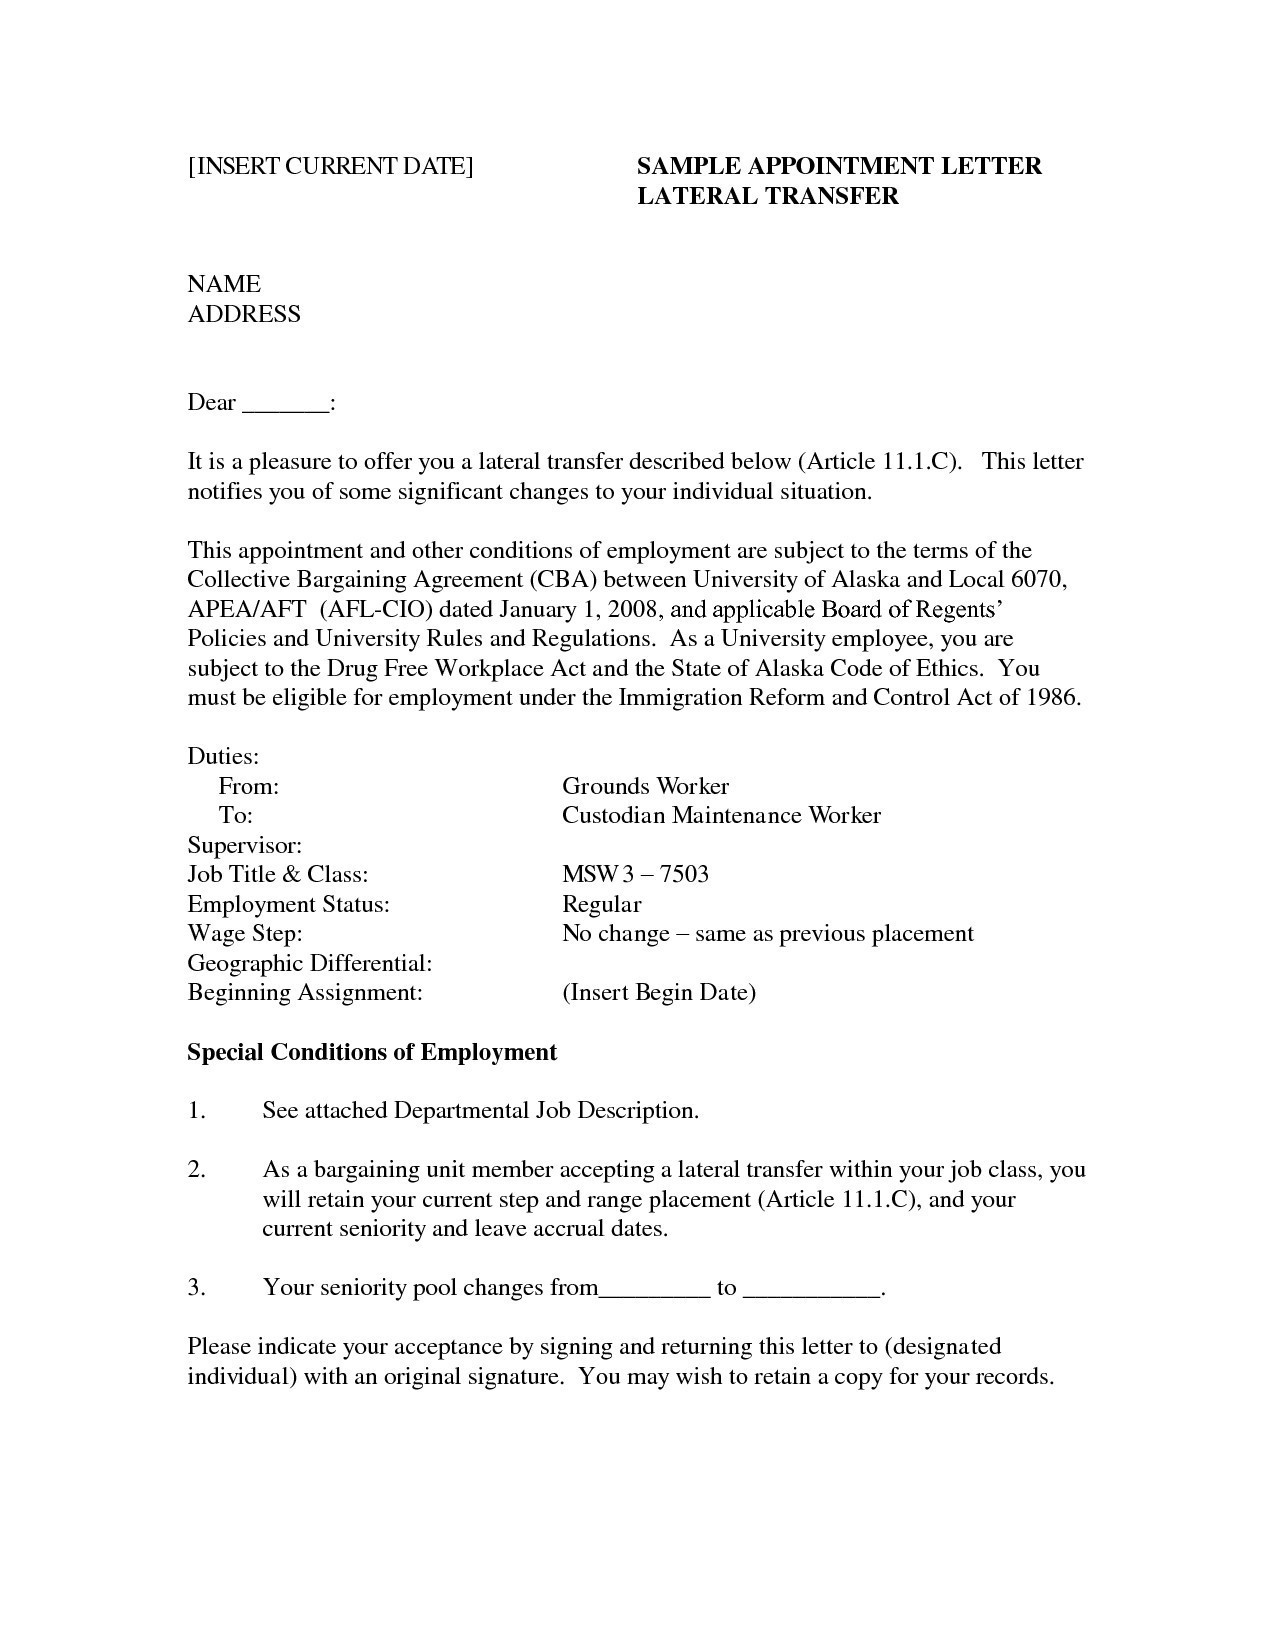 Hr cover letter template collection letter templates hr cover letter template job application letter format template copy cover letter template hr maxwellsz